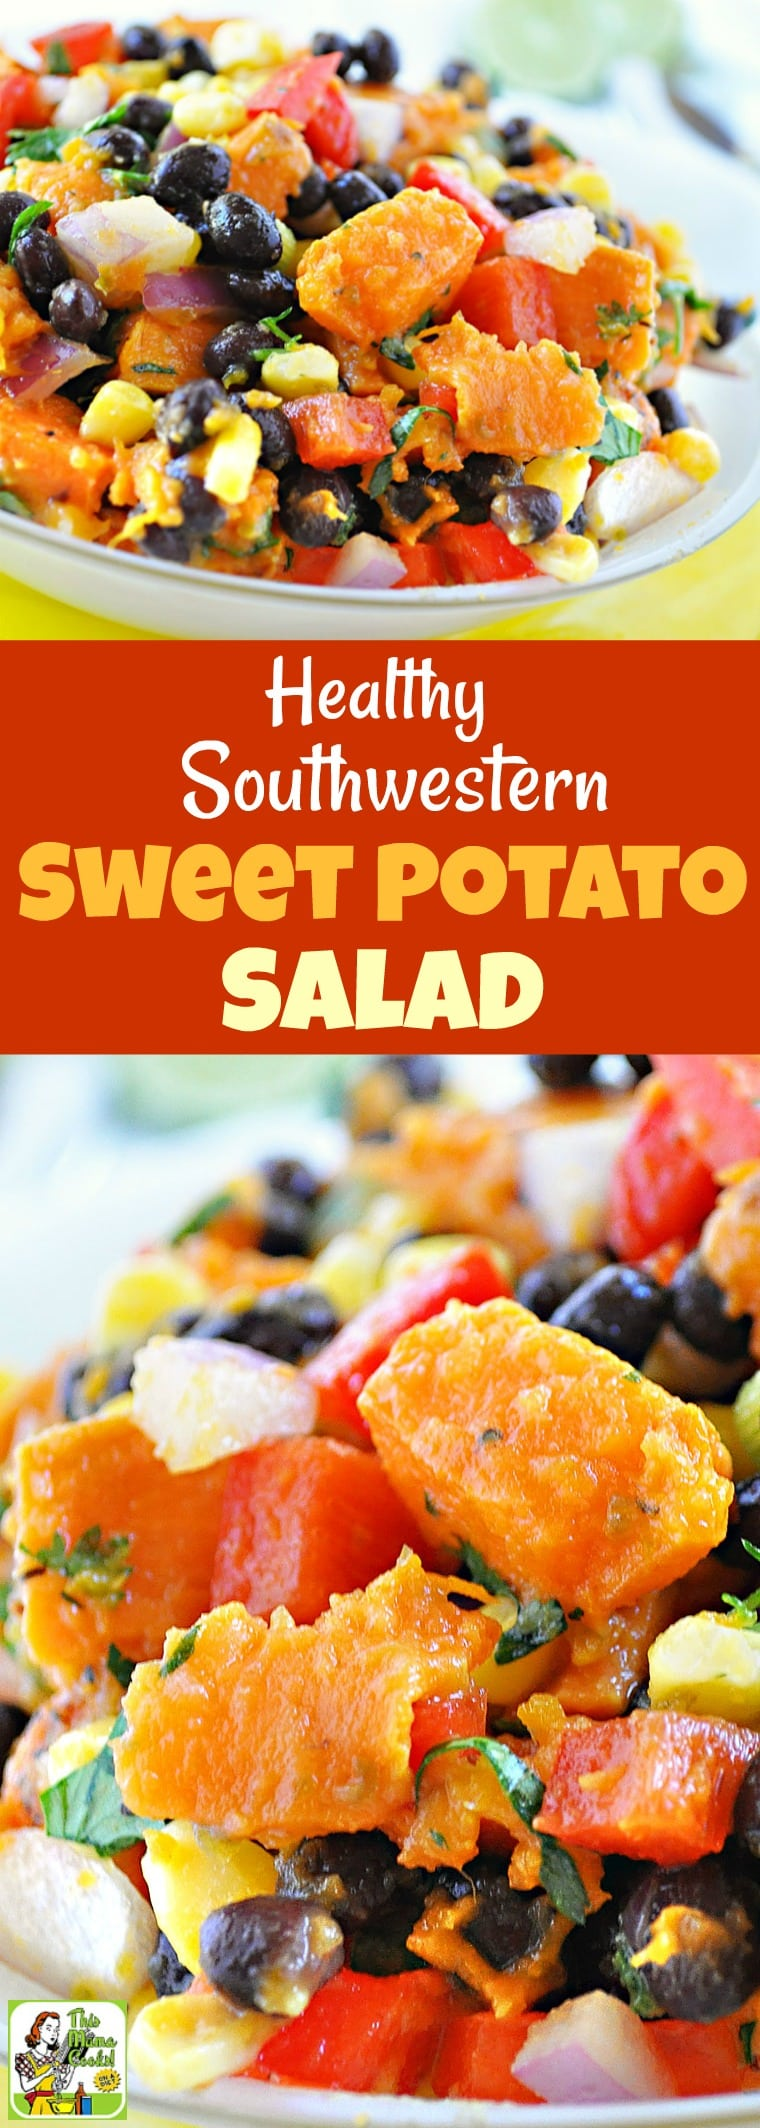 Try this Healthy Southwestern Sweet Potato Salad recipe! This cold sweet potato recipe is ideal for bbqs and potluck parties. Click to get this healthy, gluten free, and easy to make sweet potato salad recipe! #recipe #easy #recipeoftheday #healthyrecipes #glutenfree #easyrecipes #salad #sweetpotato #blackbeans #healthysalad